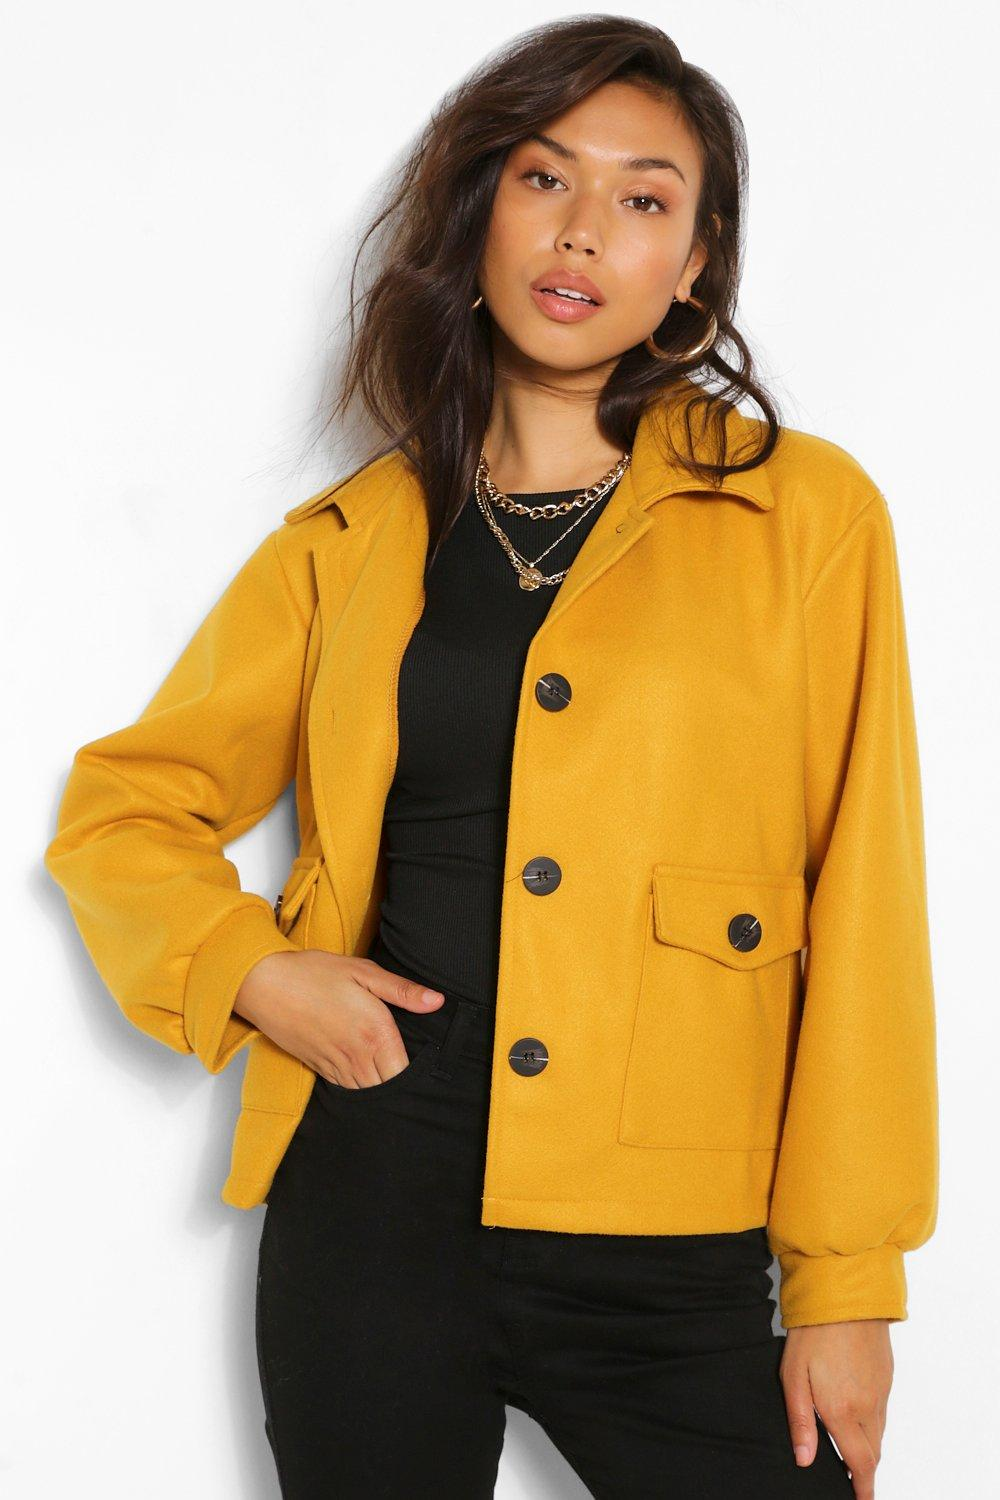 1950s Jackets, Coats, Bolero | Swing, Pin Up, Rockabilly Womens Cropped Wool Look Jacket - Yellow - 12 $15.20 AT vintagedancer.com